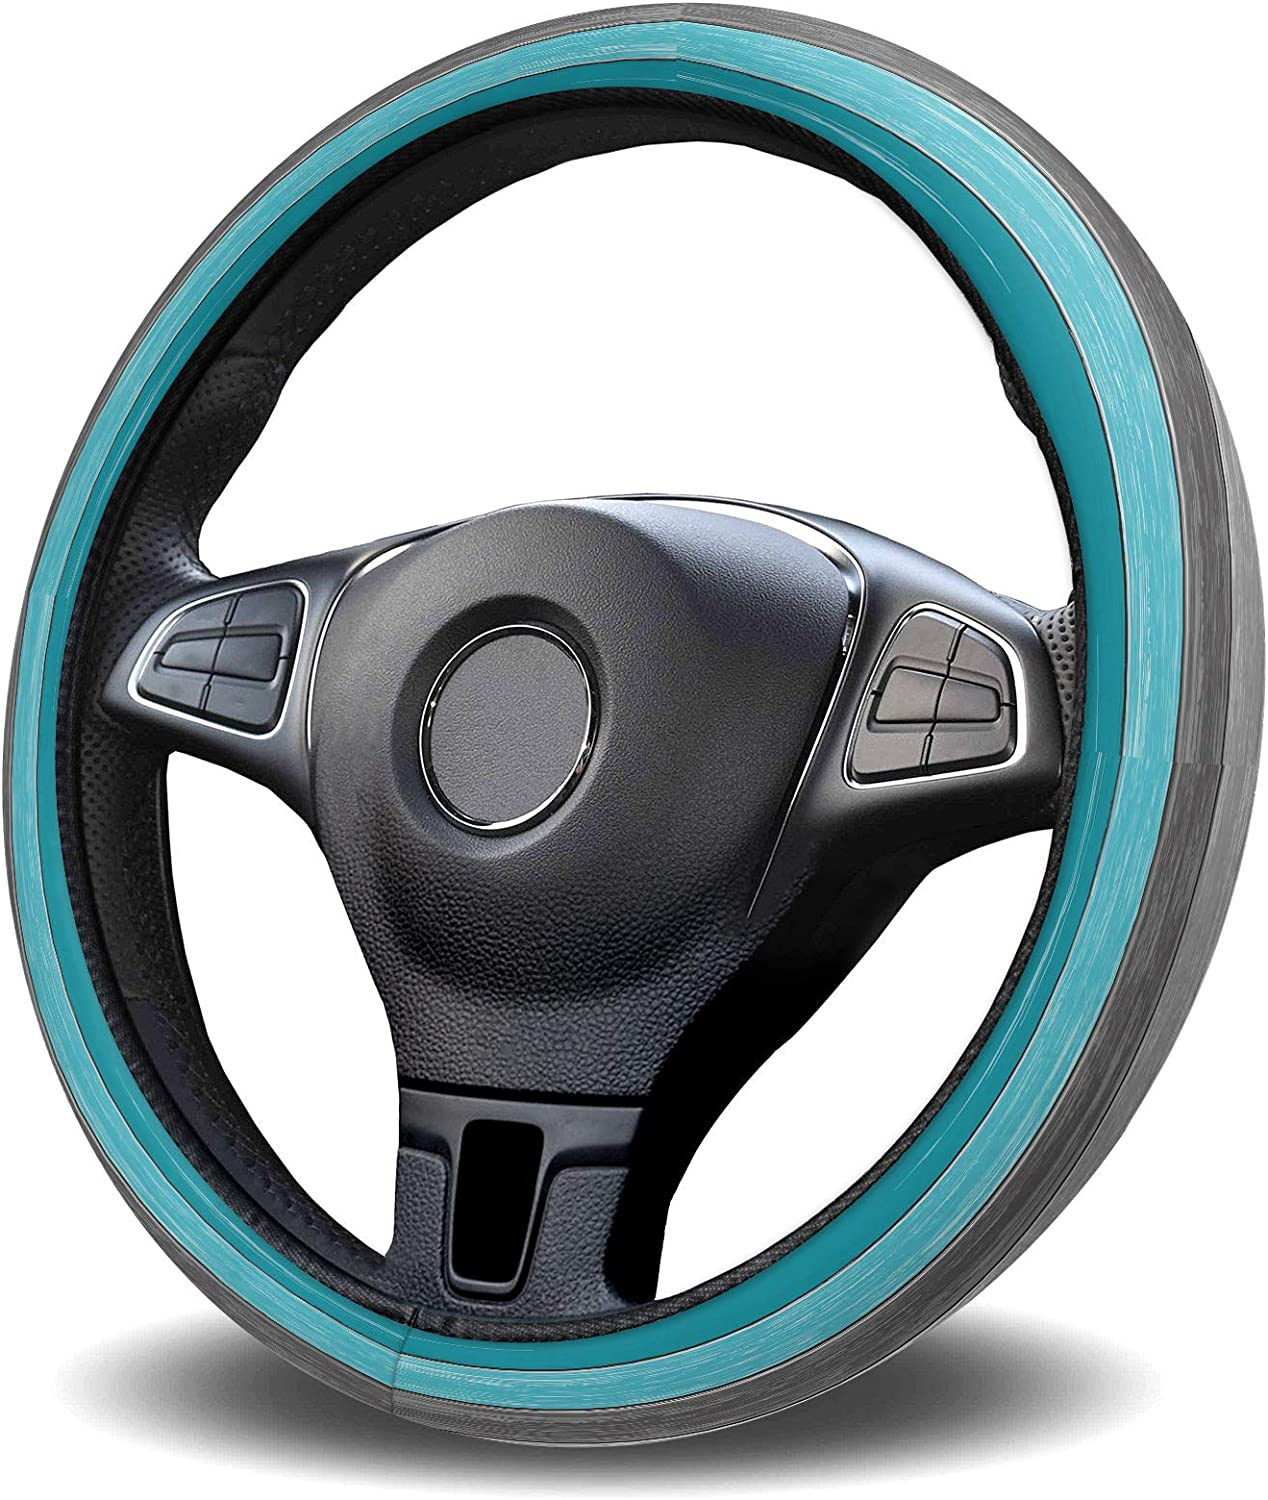 Zadaling Steering Bombing new work Wheel Covers Ombre Farmhouse Dealing full price reduction Rustic Teal Aqua